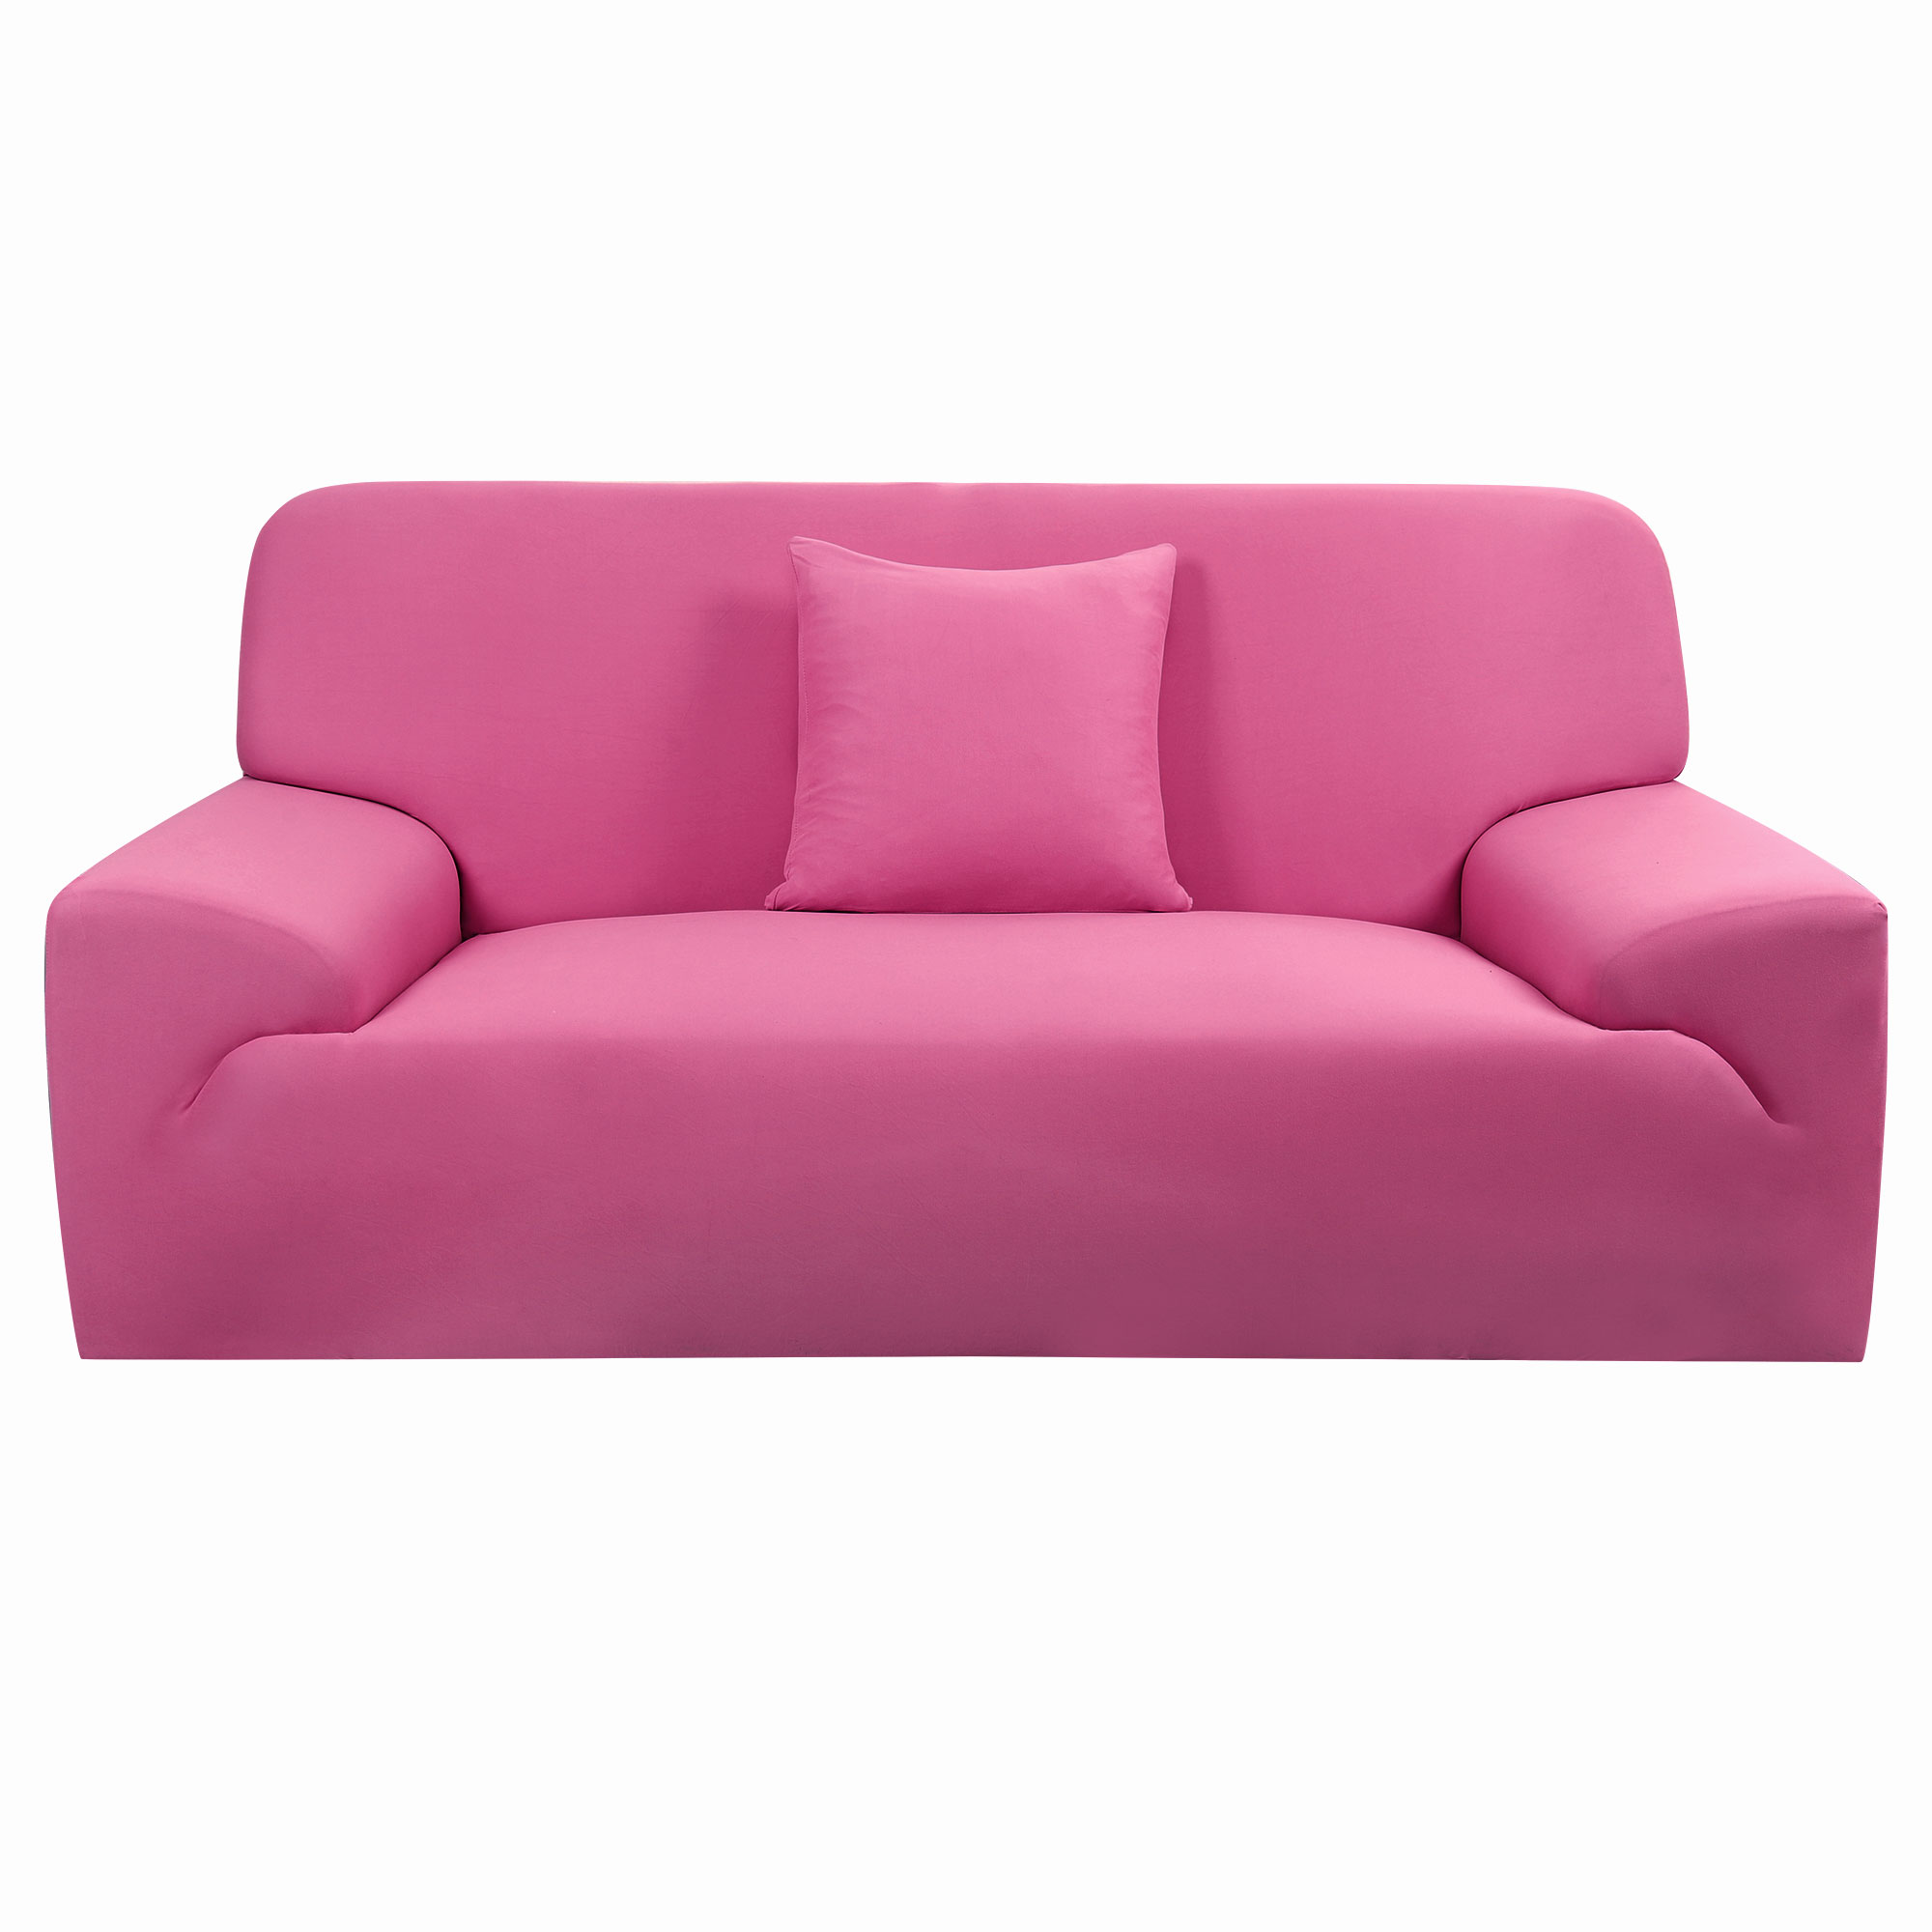 Chair Loveseat Sofa Couch Stretch Protector Cover Slipcover Fuchsia 57''-72''